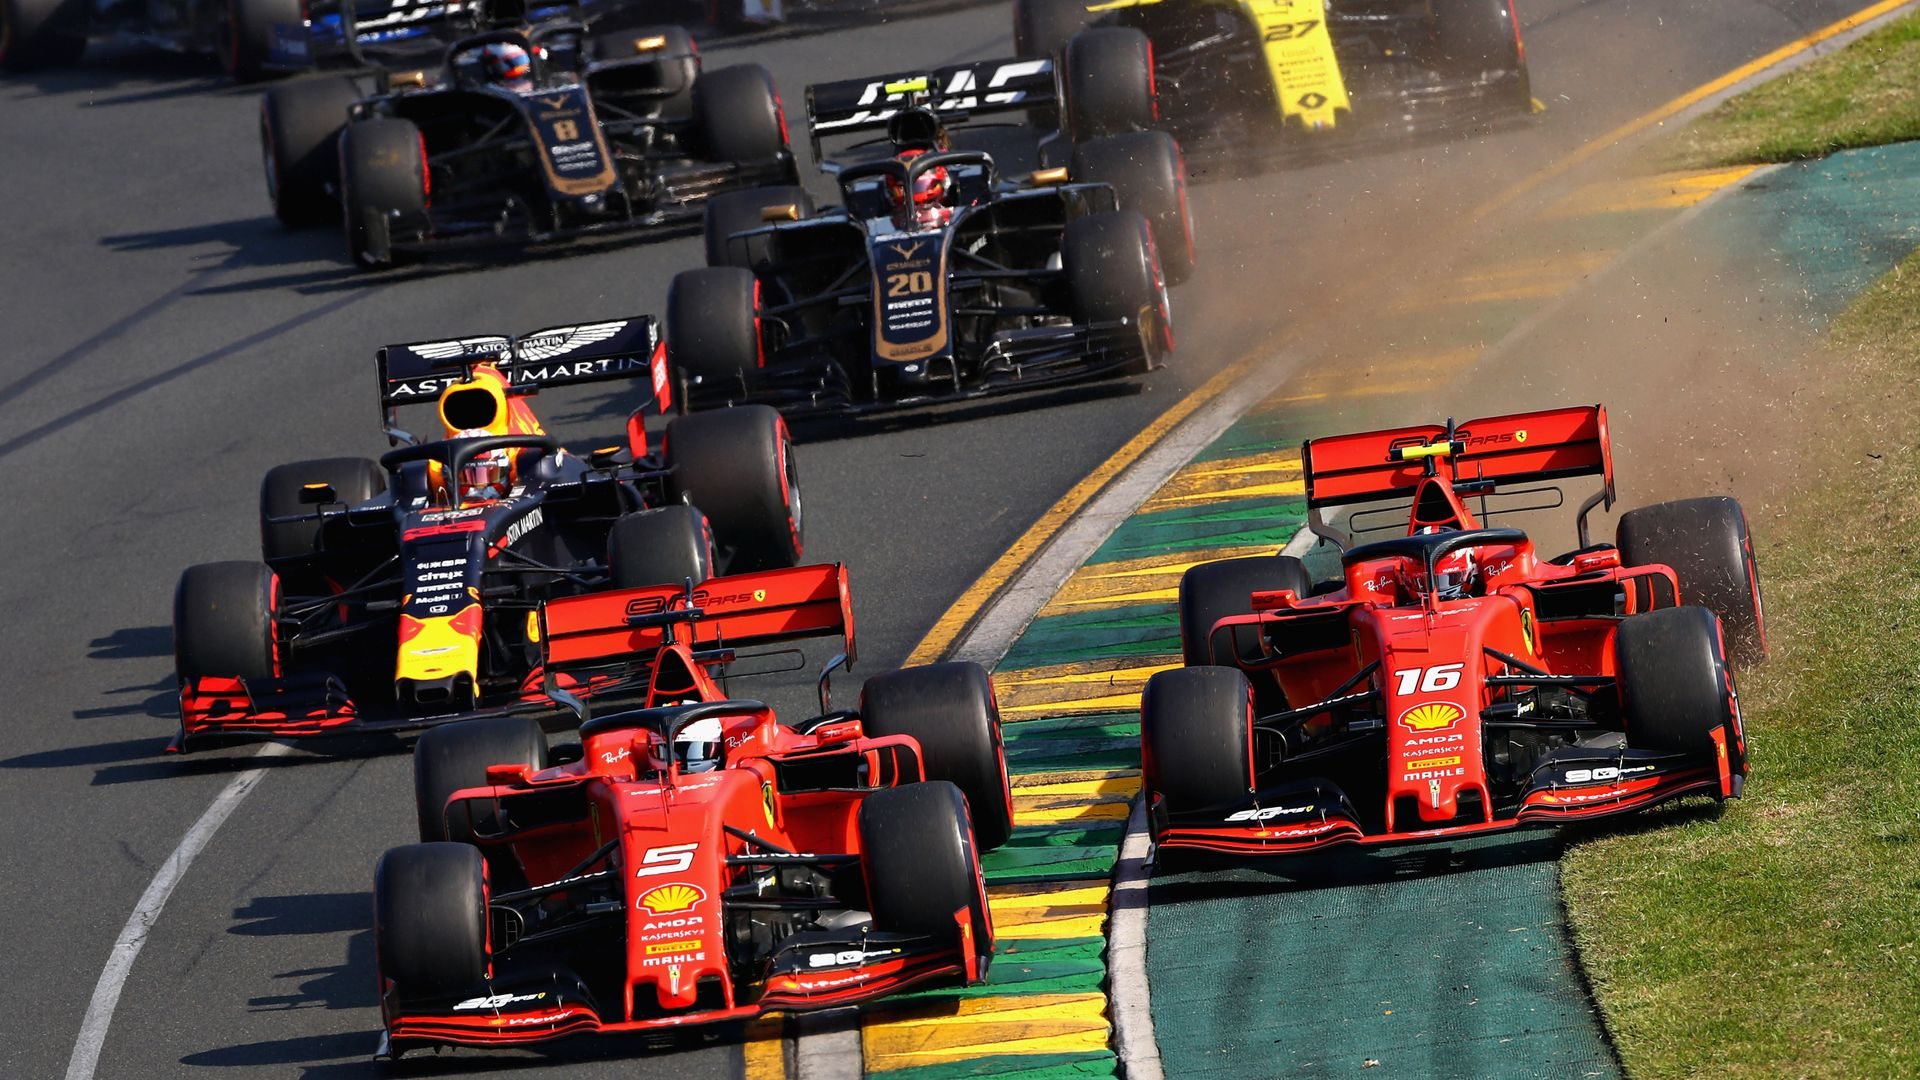 F1's big cost-cutting changes approved